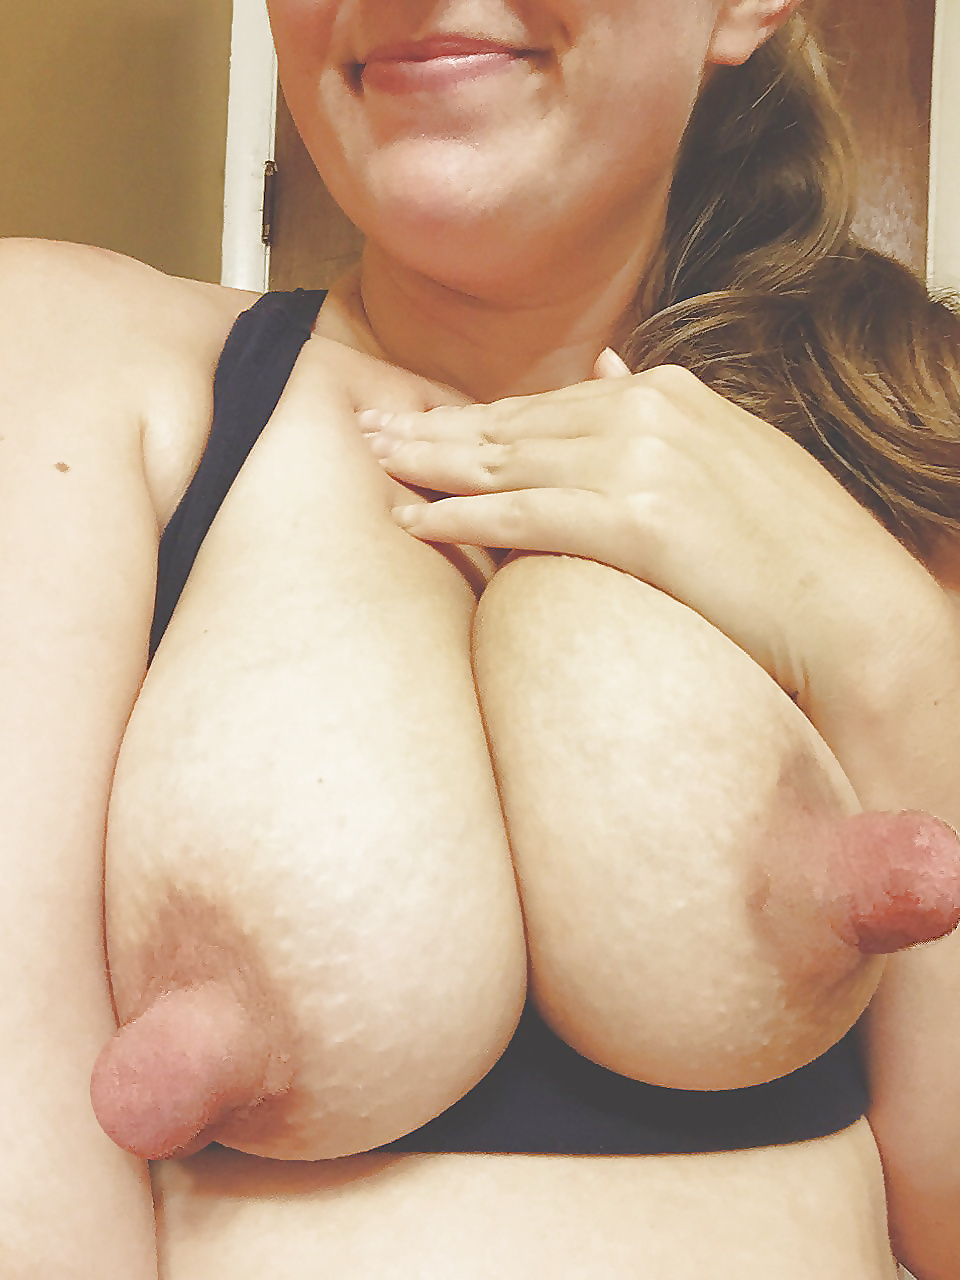 Who Is This Ultra Big Tits And Mega Huge Nipple's Milf